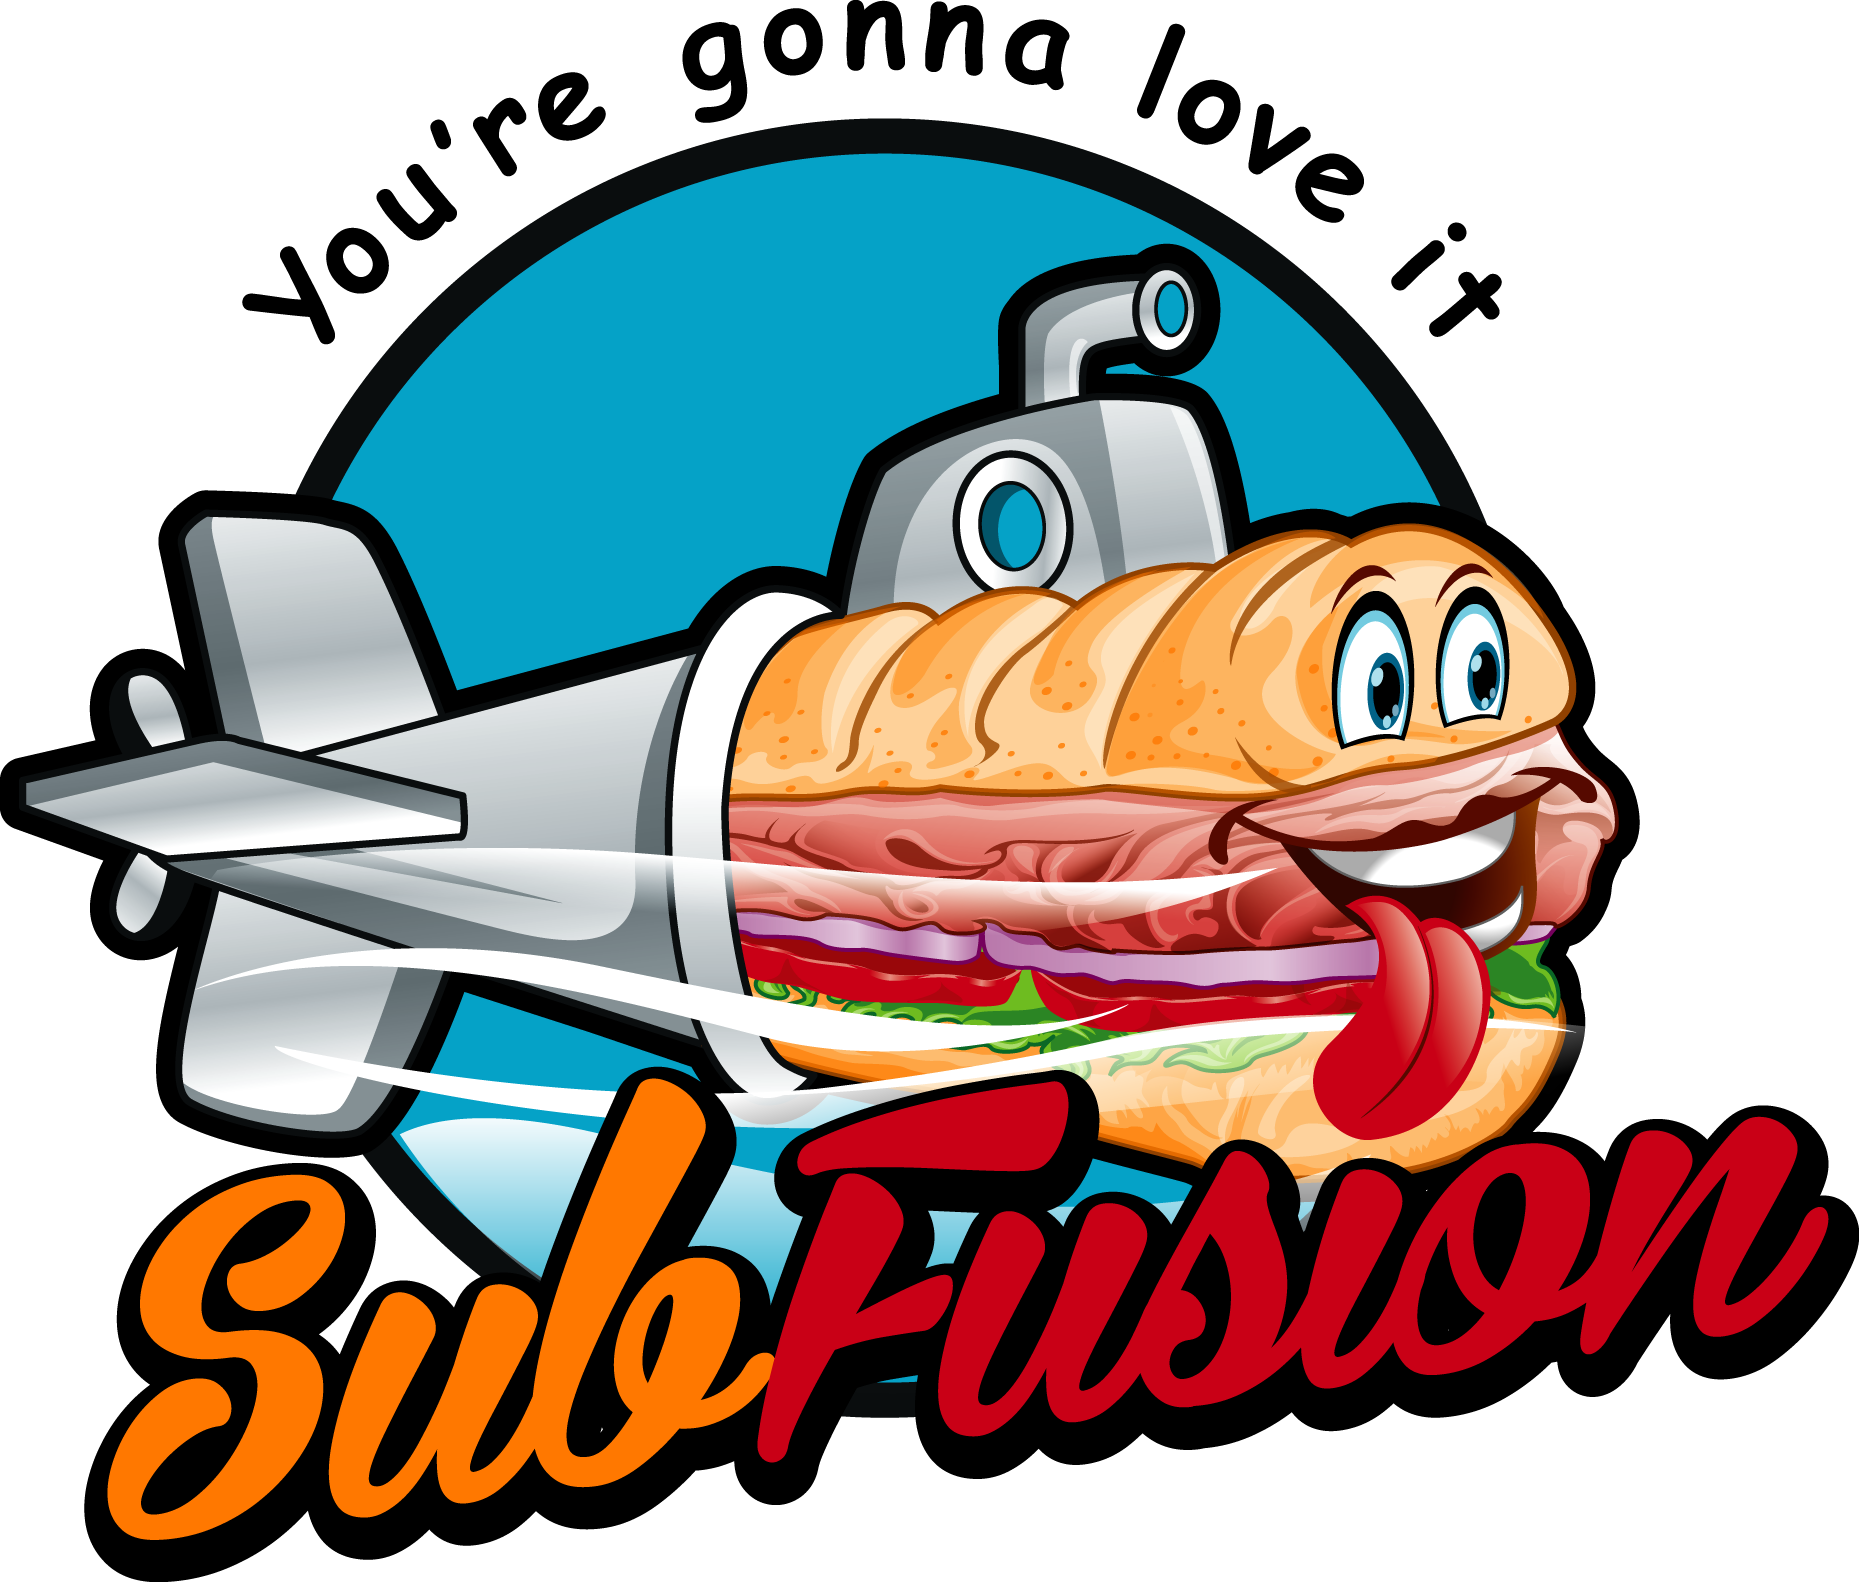 Submarine clipart transportation. Subfusion thorn brewing co